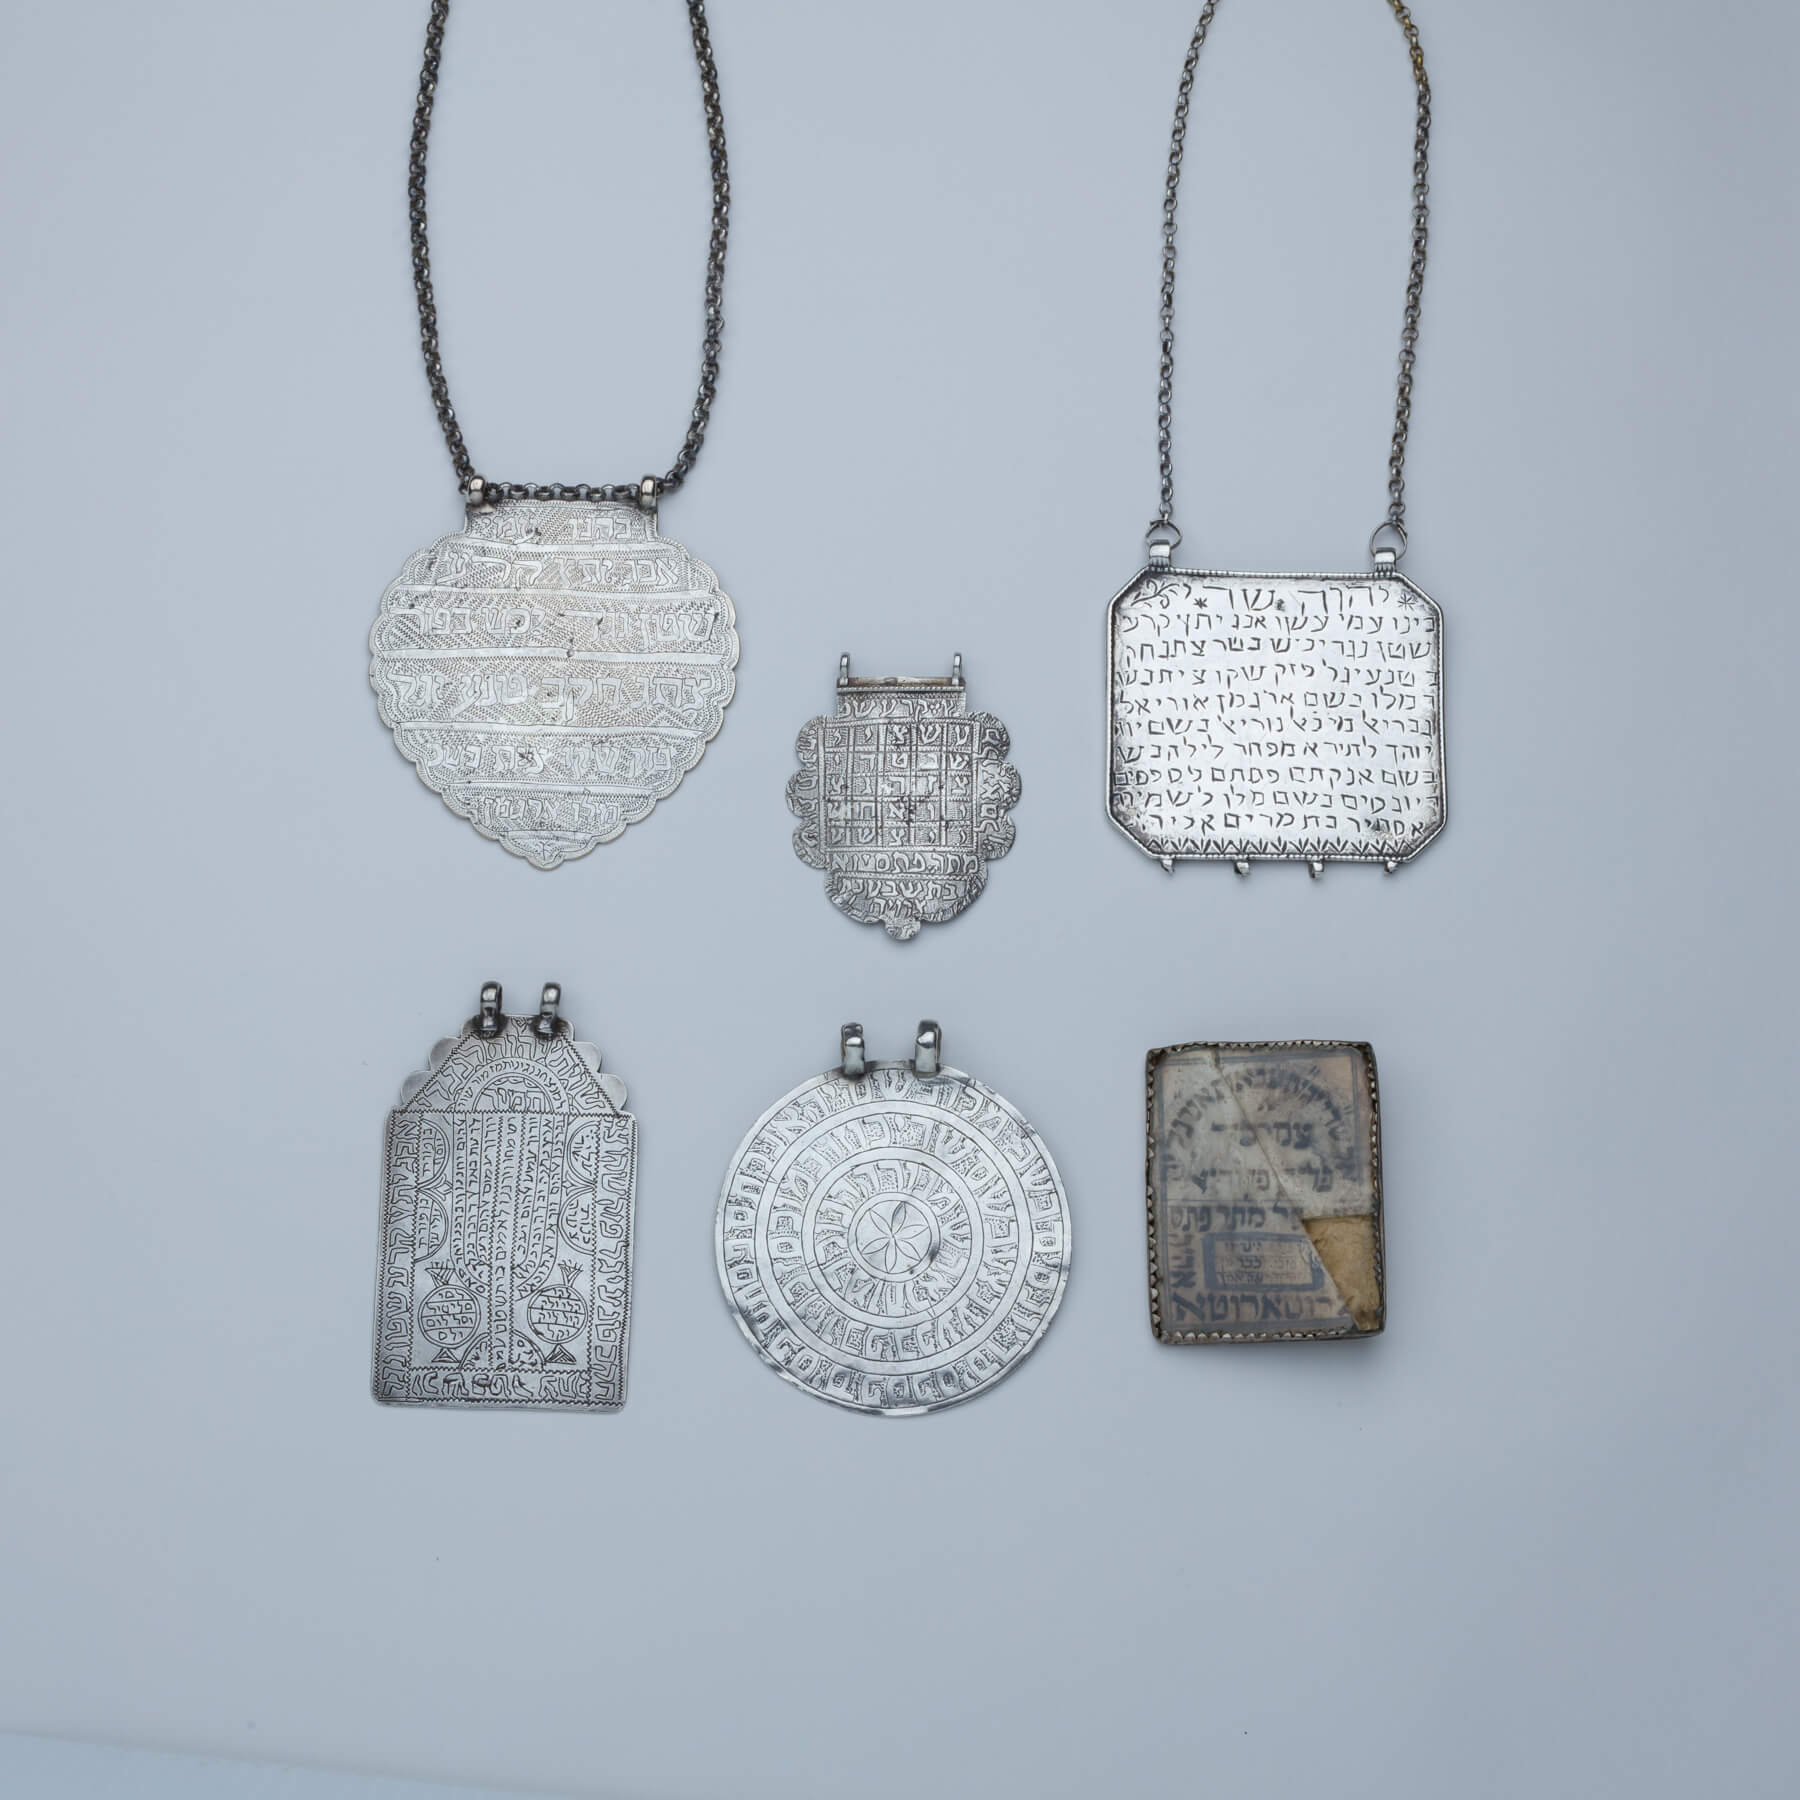 108. A Group of Six Large Silver Amulets